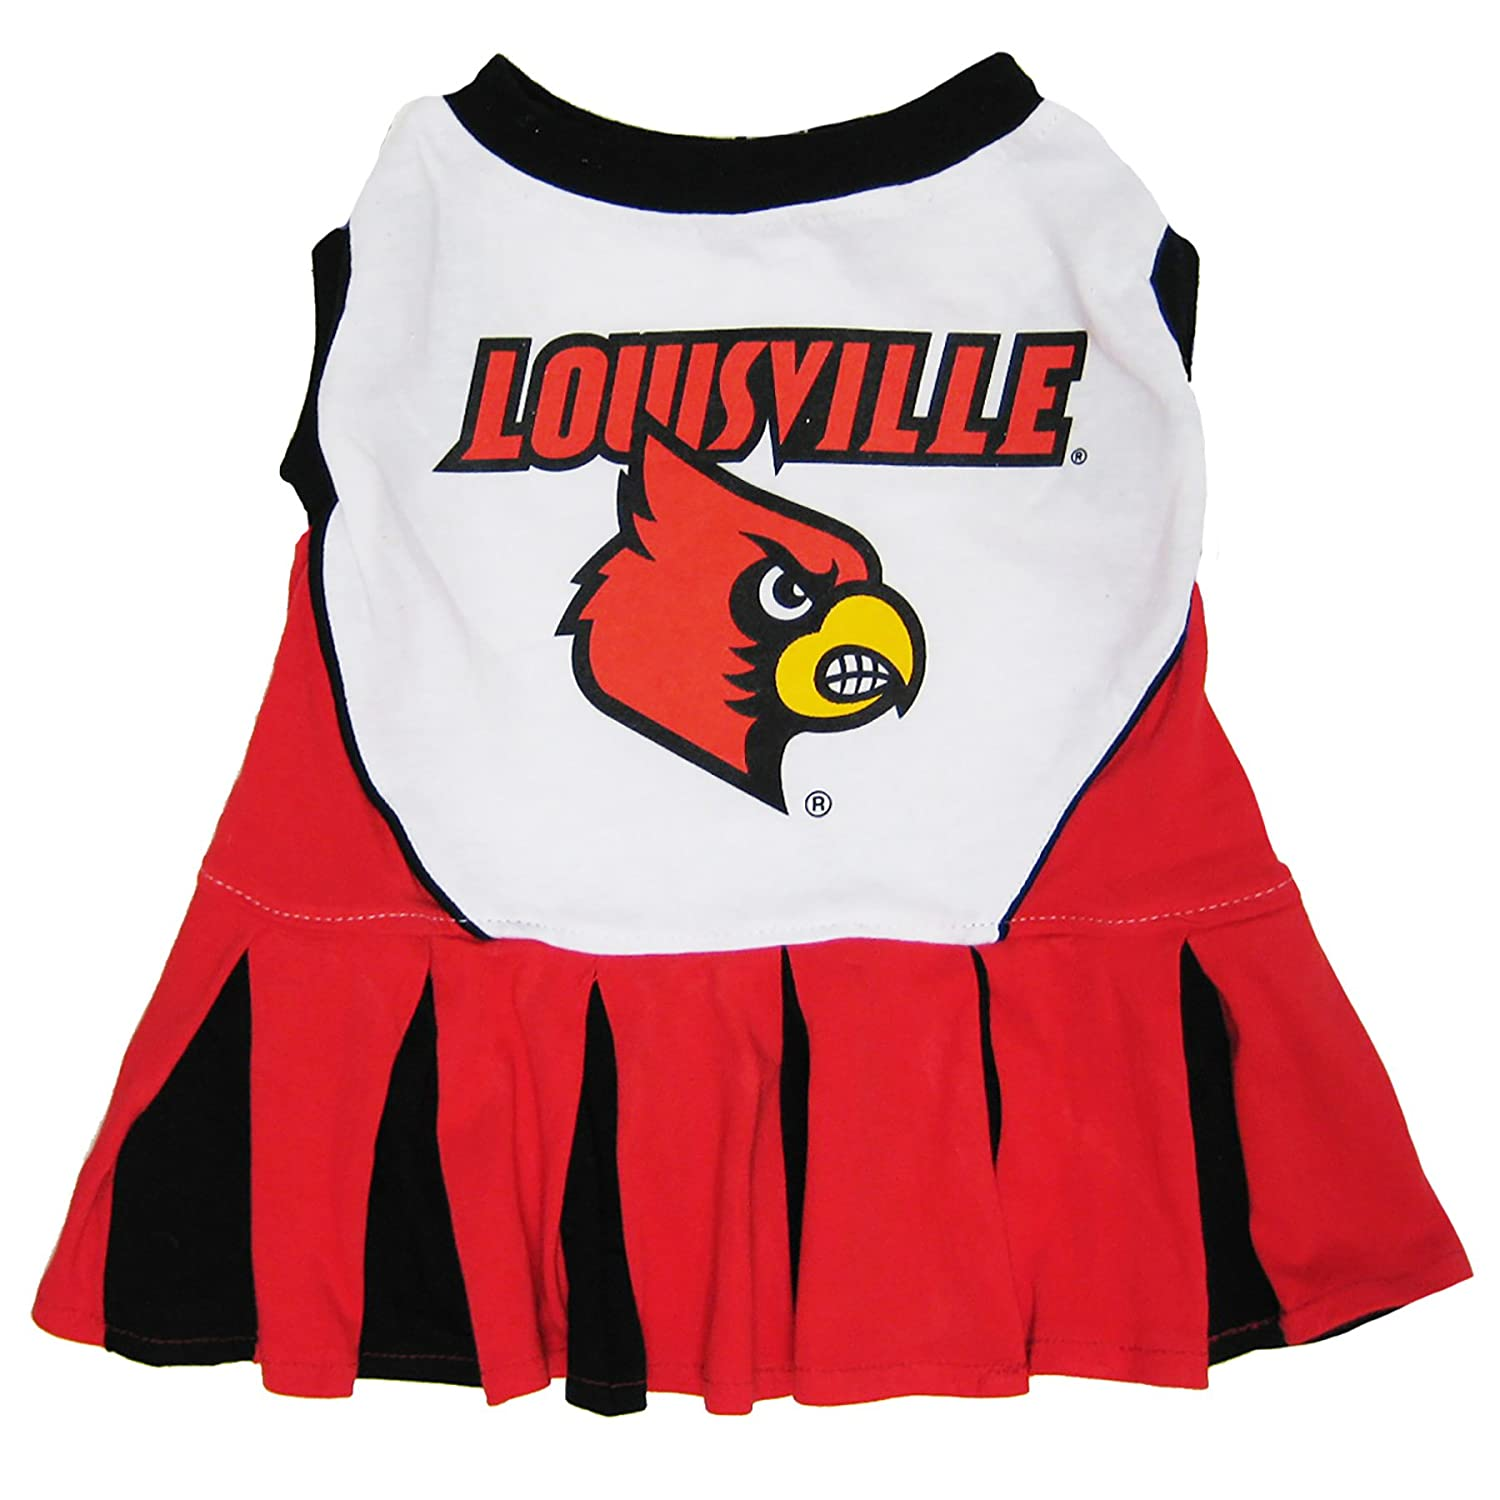 Pets First NCAA Louisville Cardinals Cheerleading Outfit